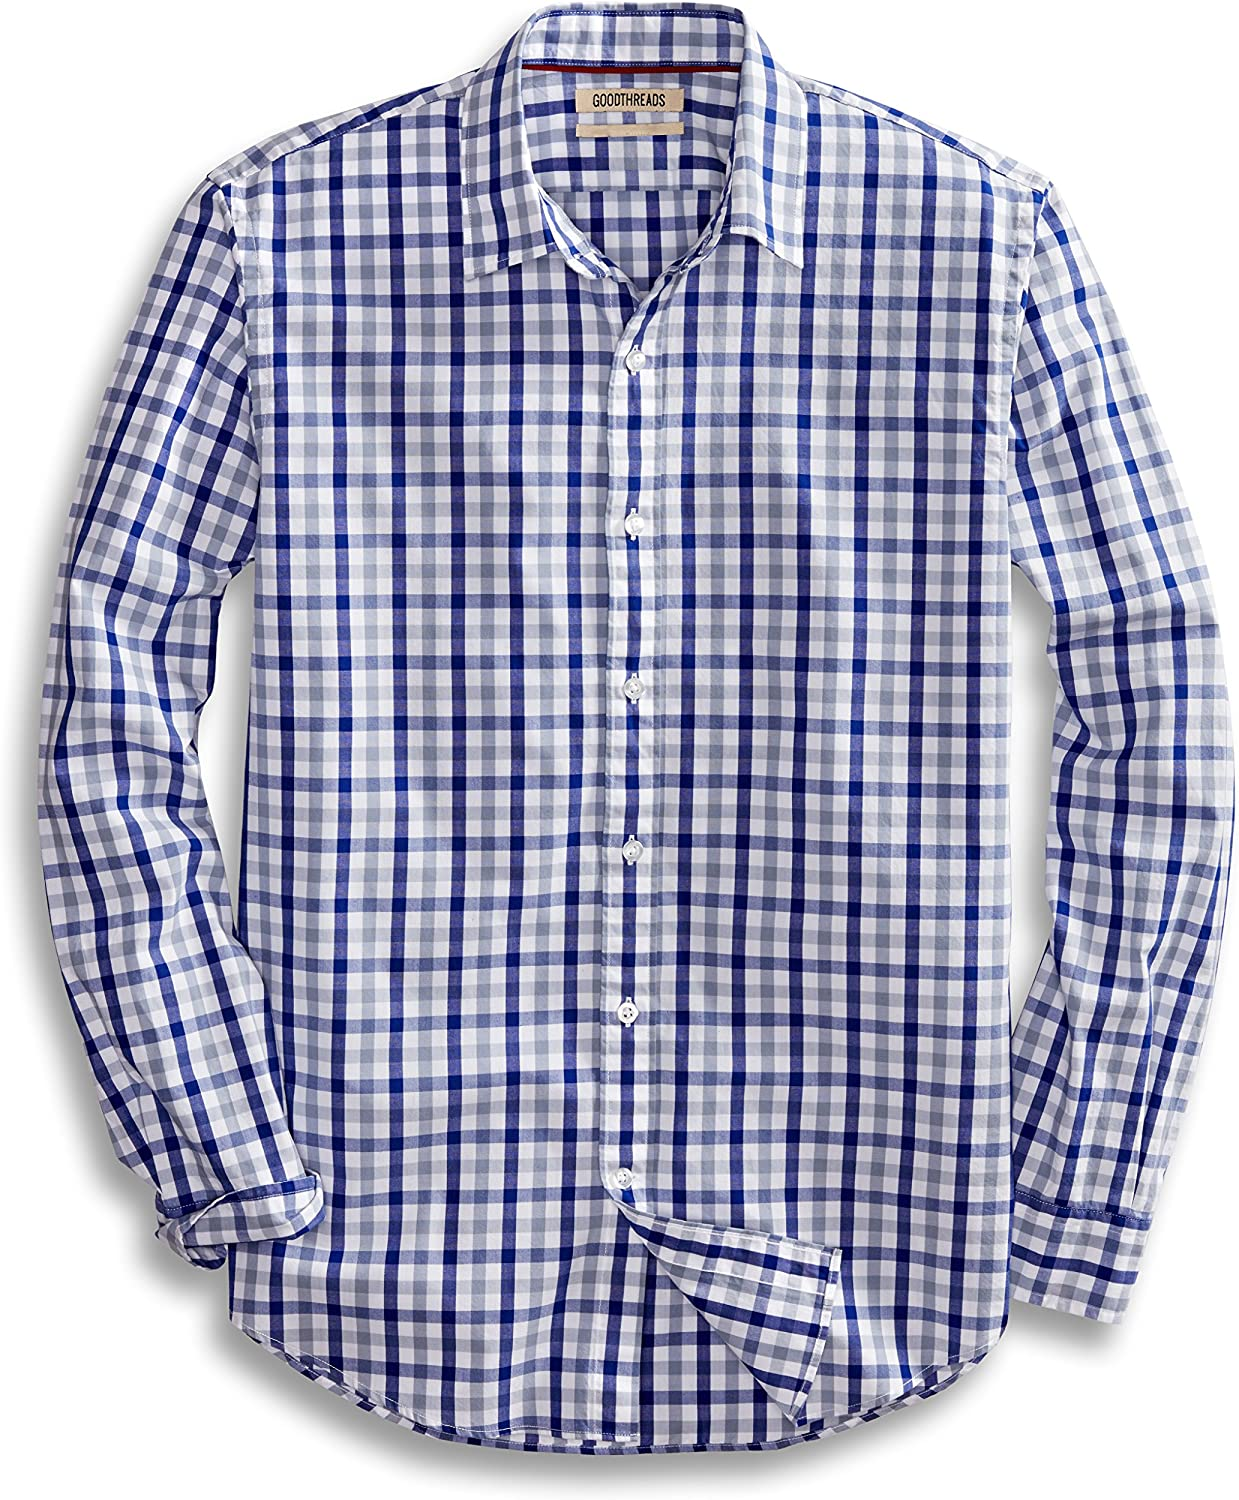 Amazon Brand - Goodthreads Mens Standard-Fit Long-Sleeve Gingham Plaid Poplin Shirt